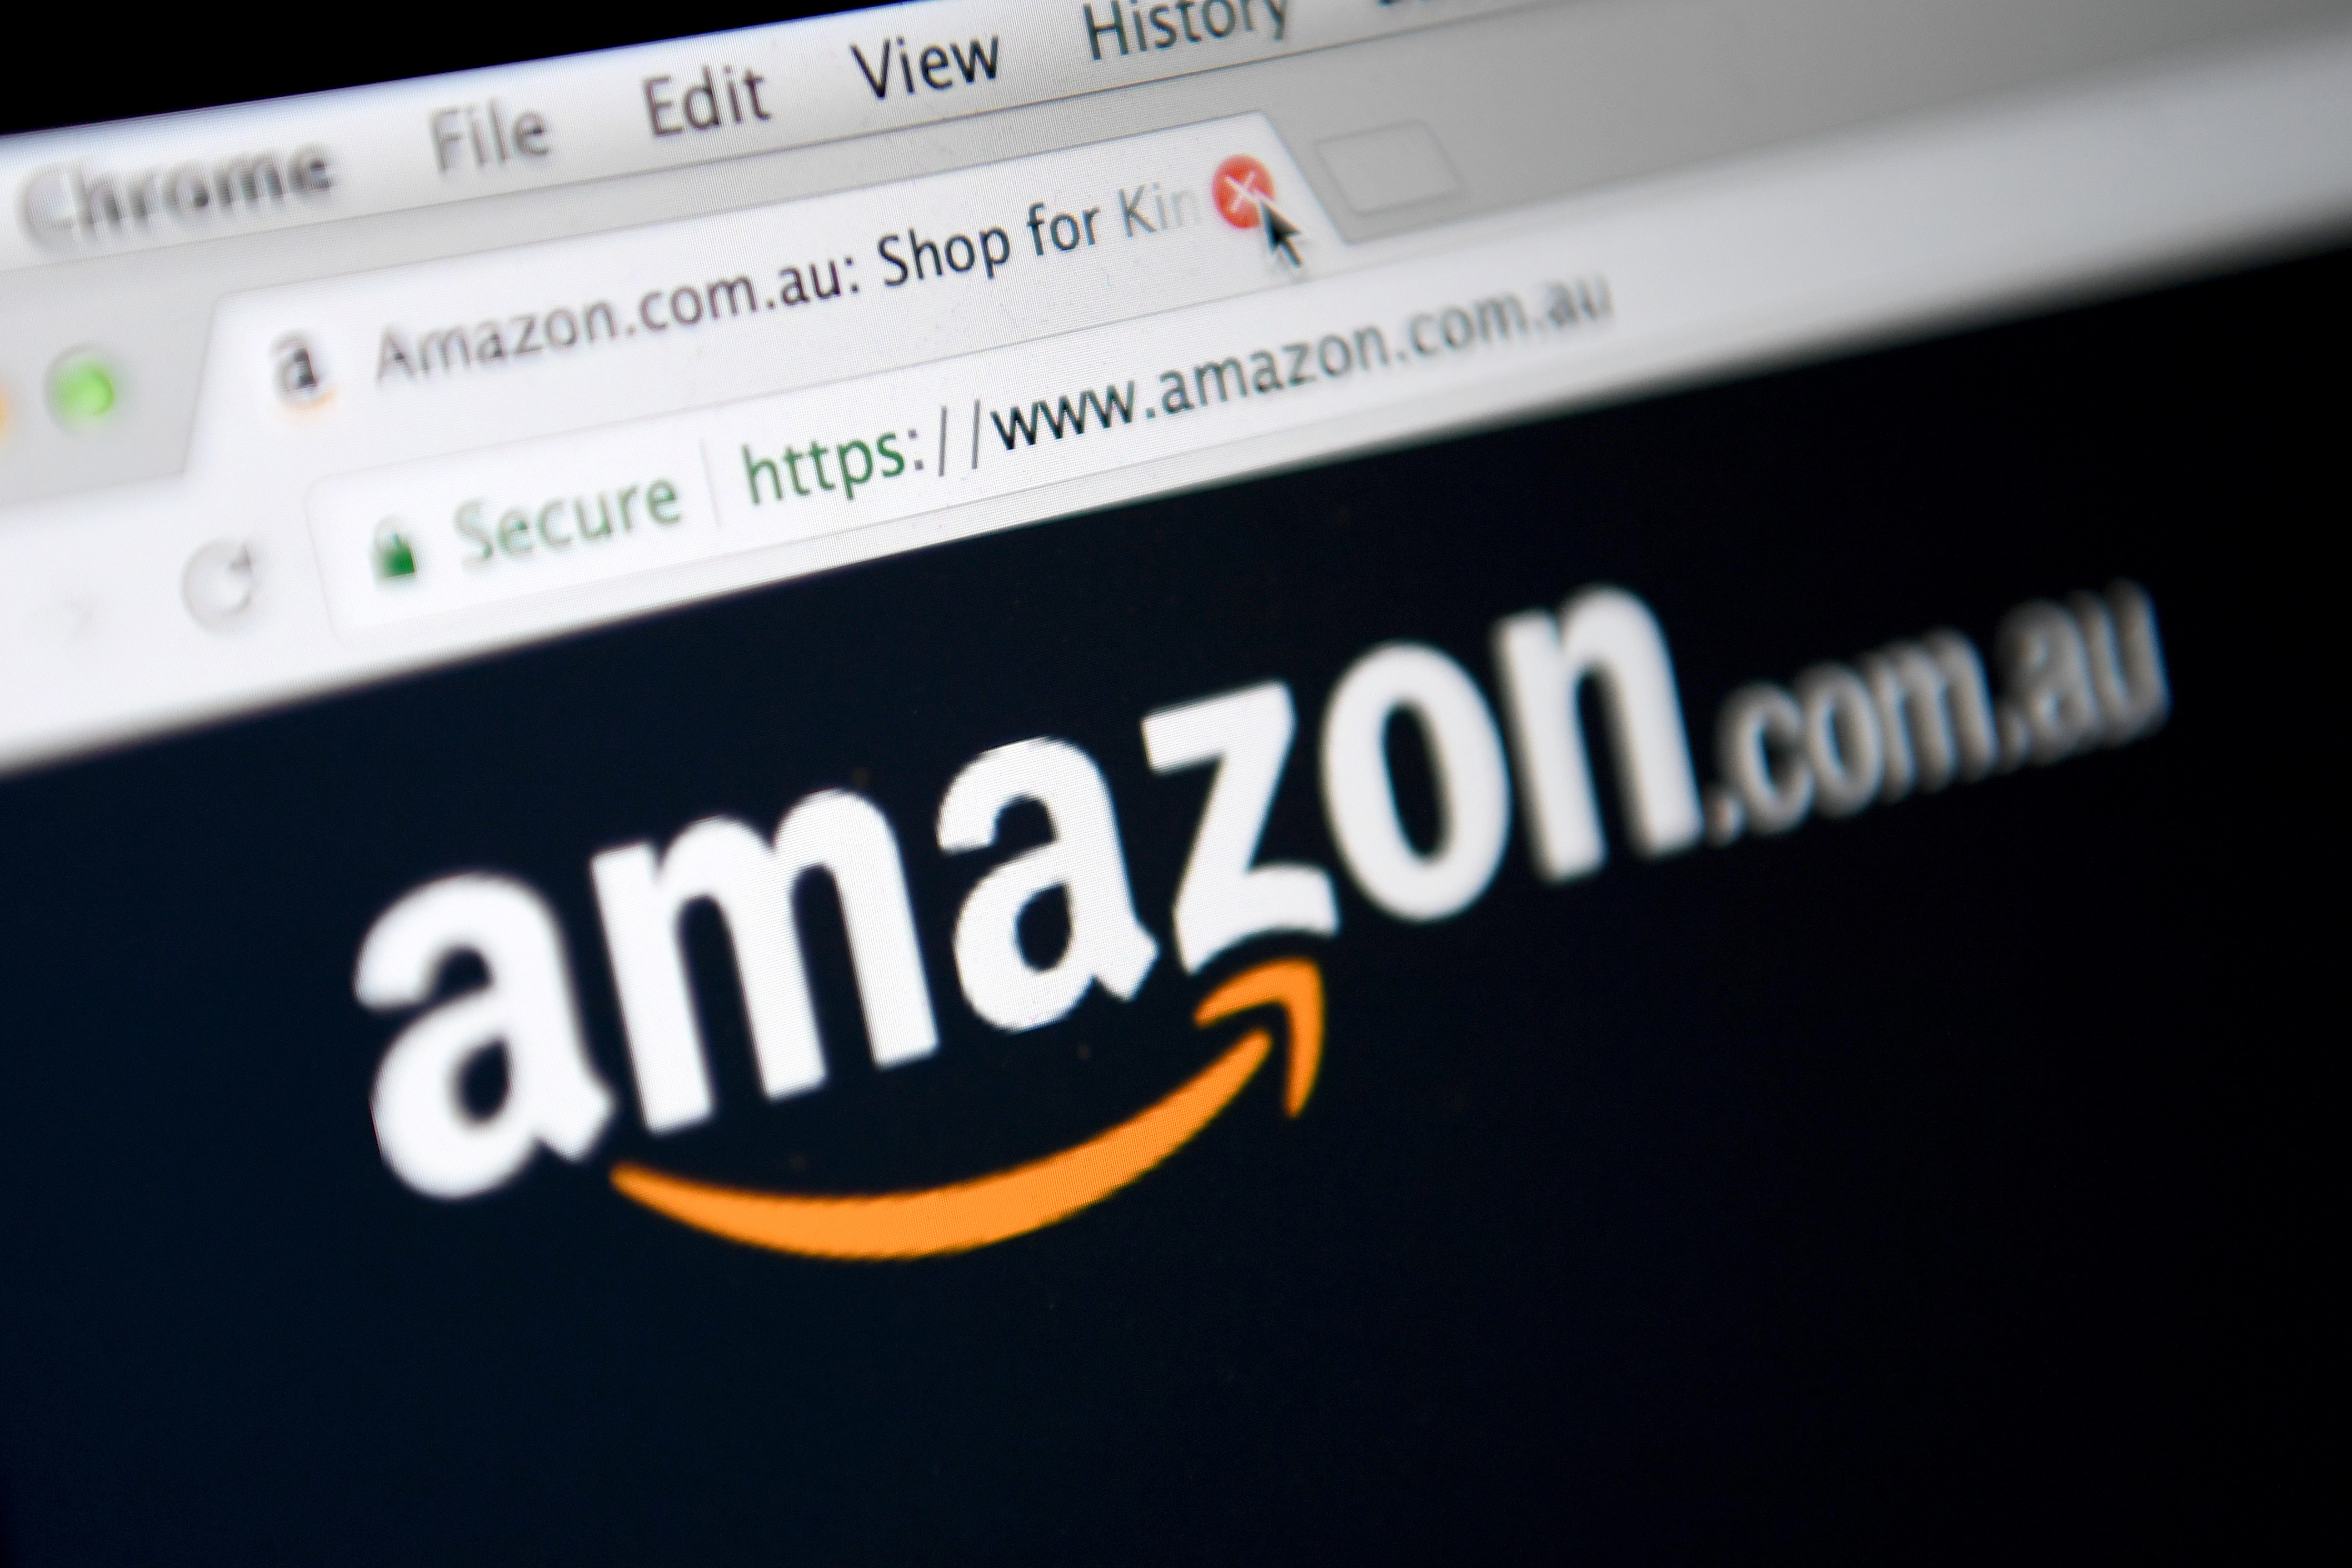 Amazon has backflipped on its decision to block Australians from shopping from its US site.